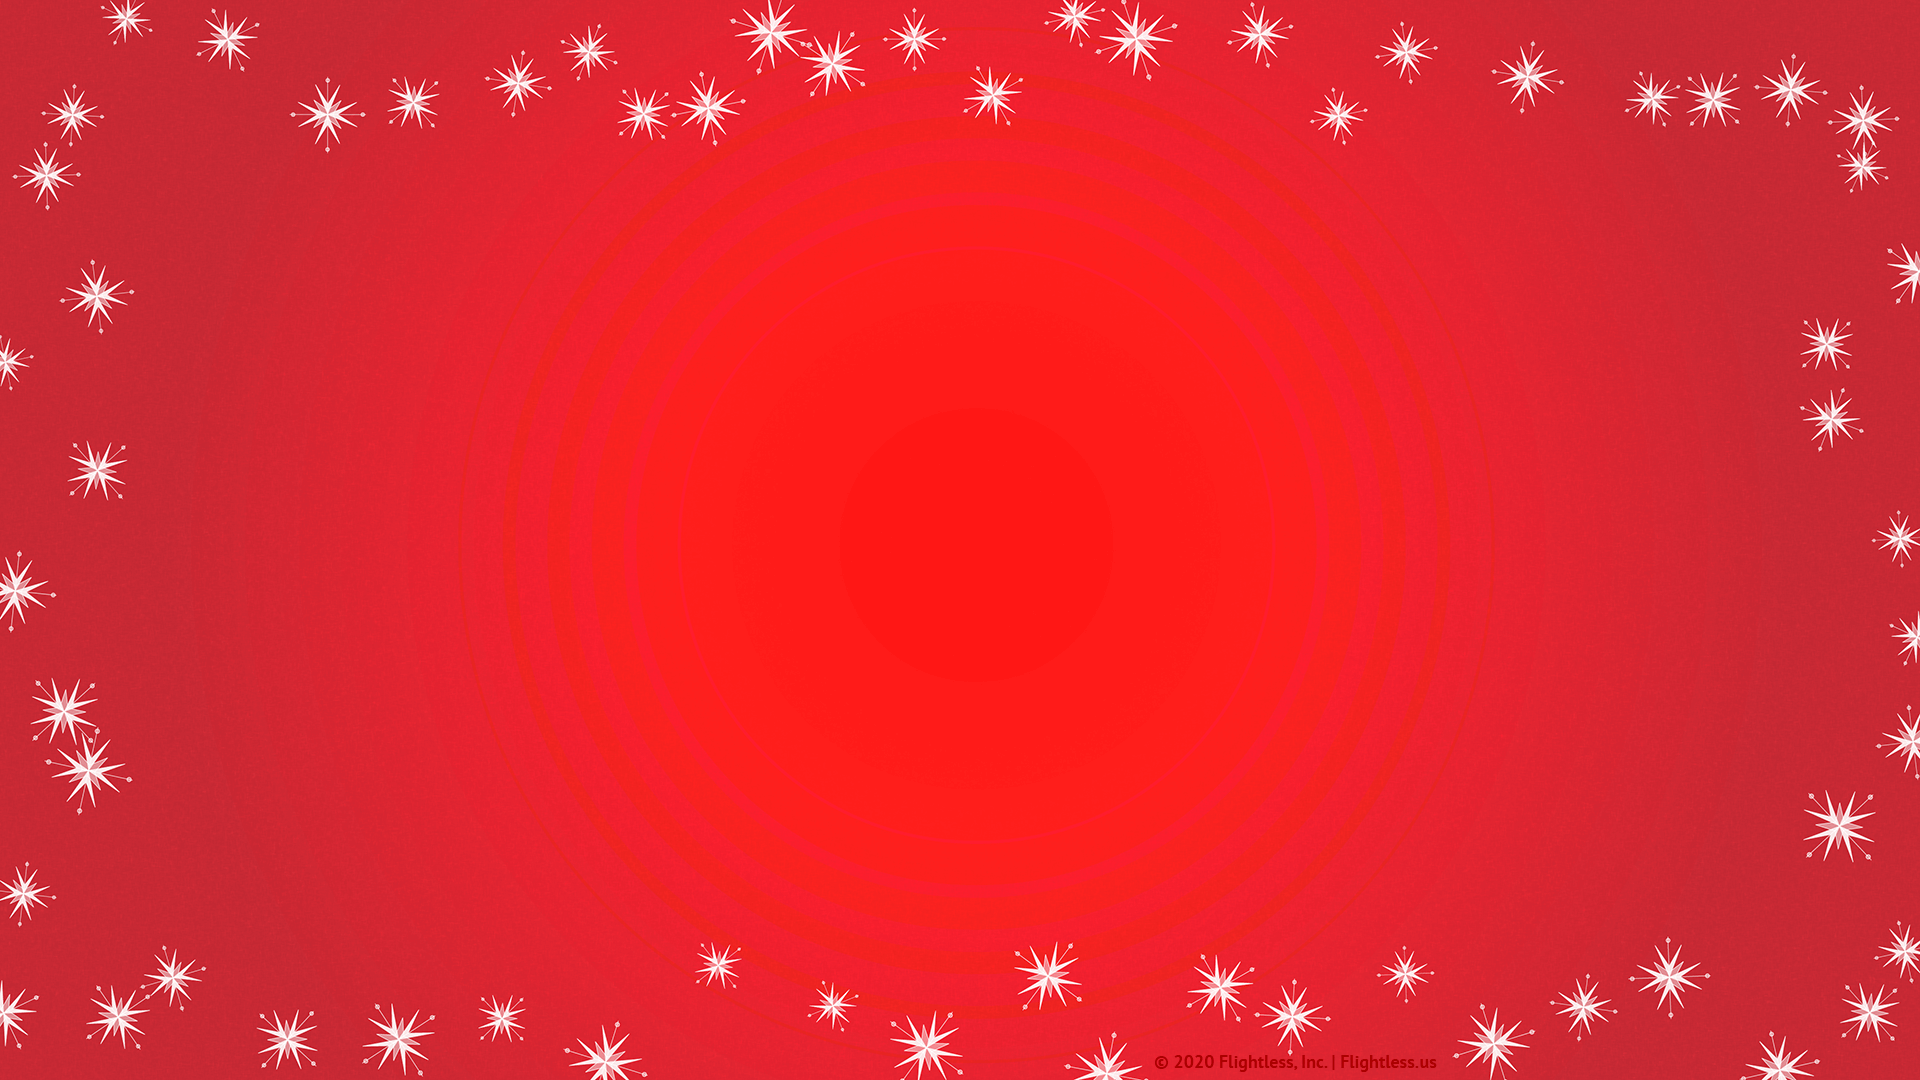 Red Zoom Background with Snowflakes